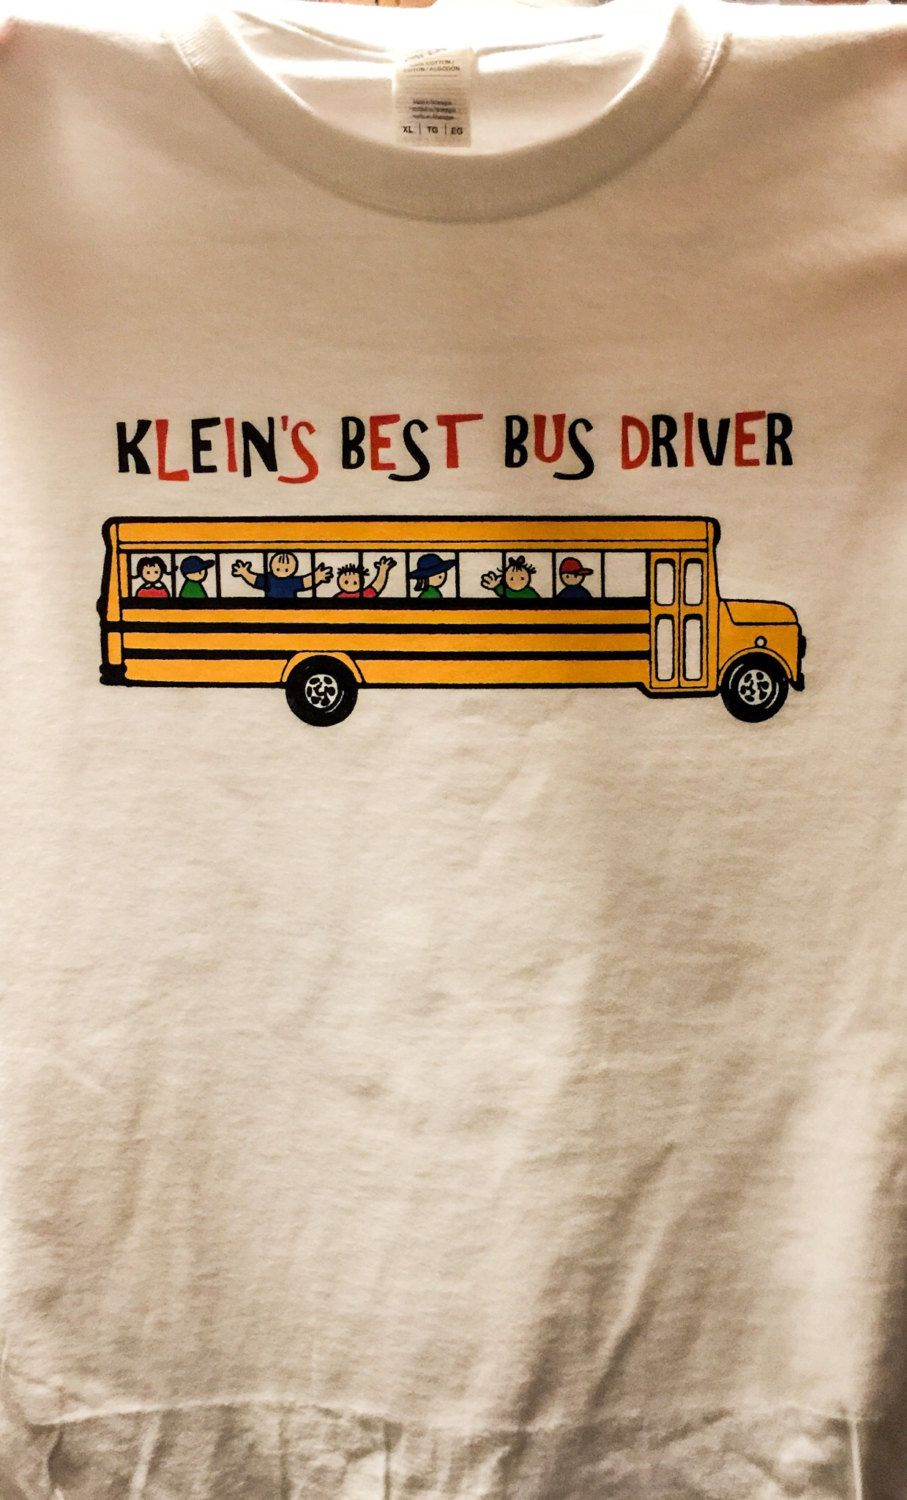 Best Bus Driver (Personalize with your school name) by Mychristianshirts on Etsy